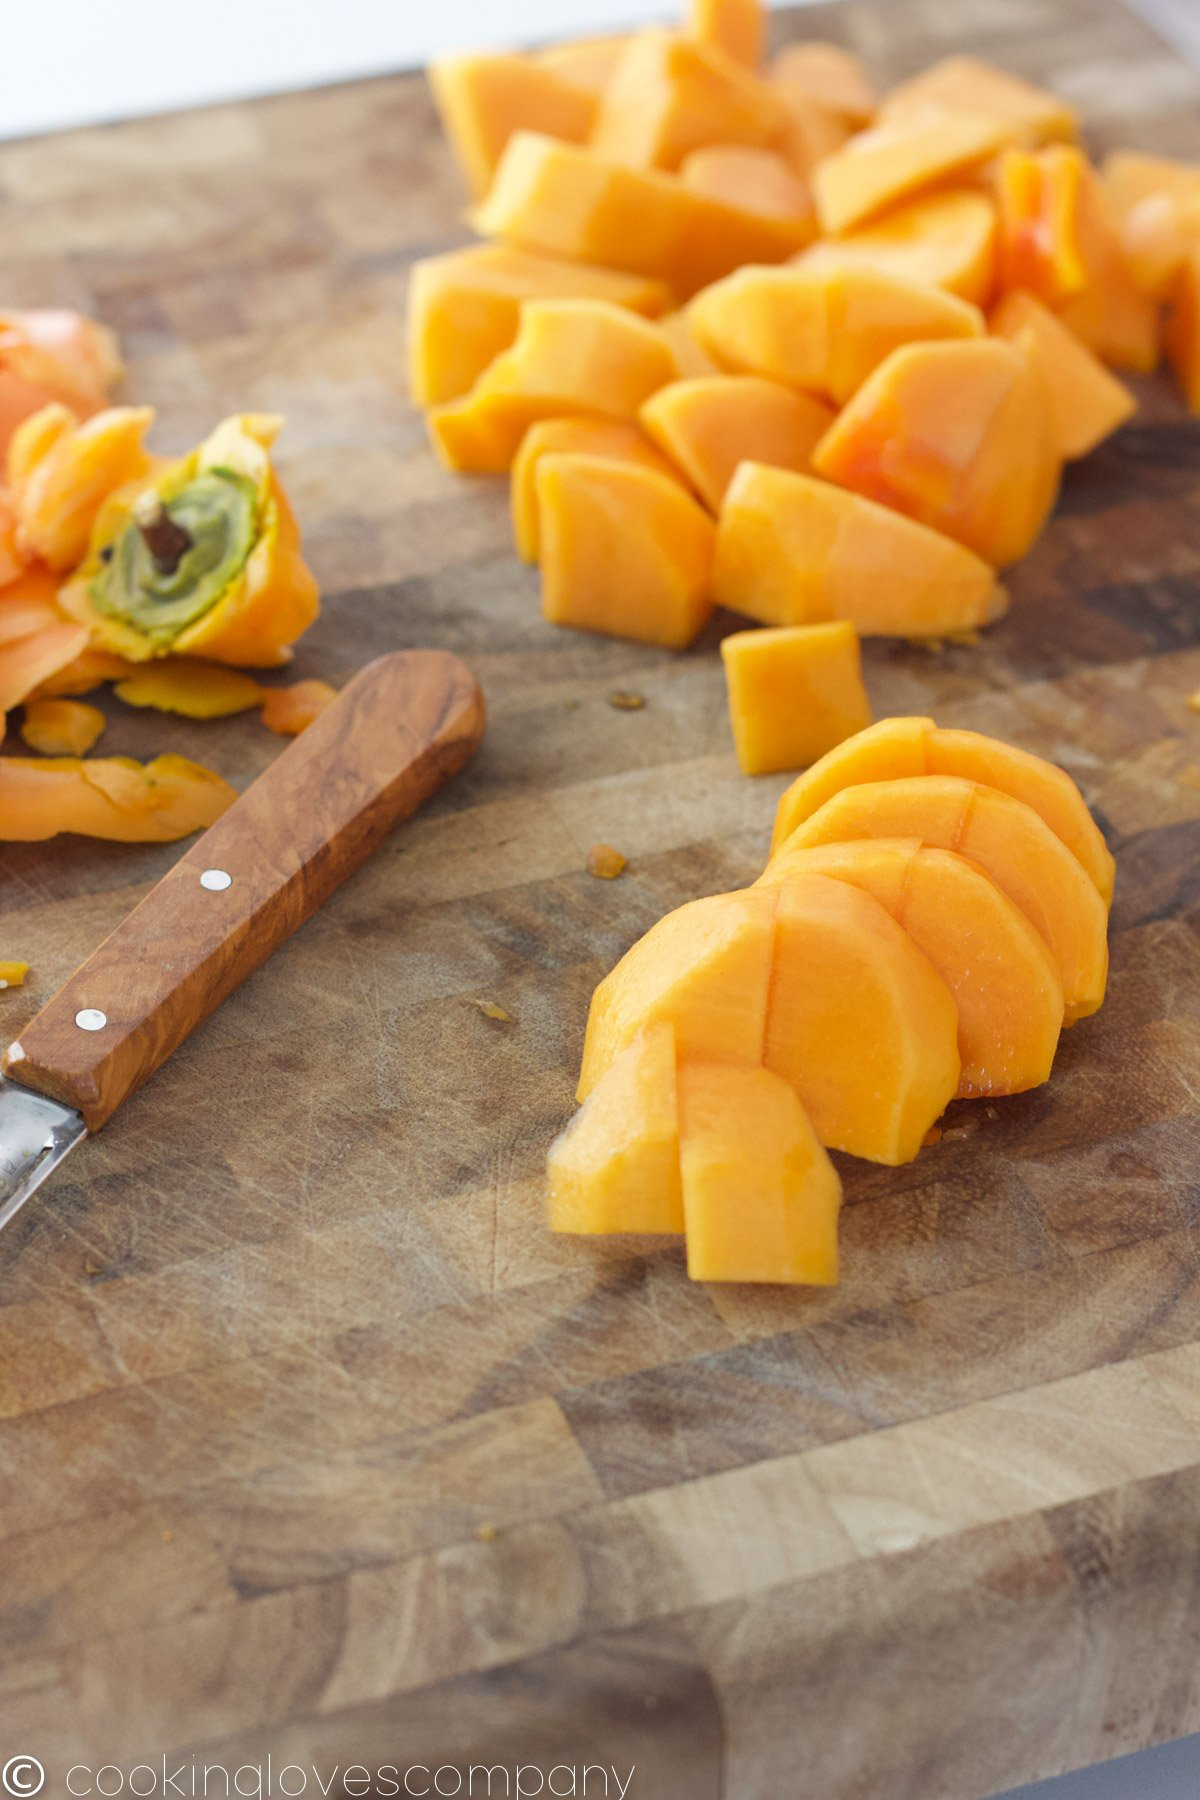 Chopped persimmon on a cutting board